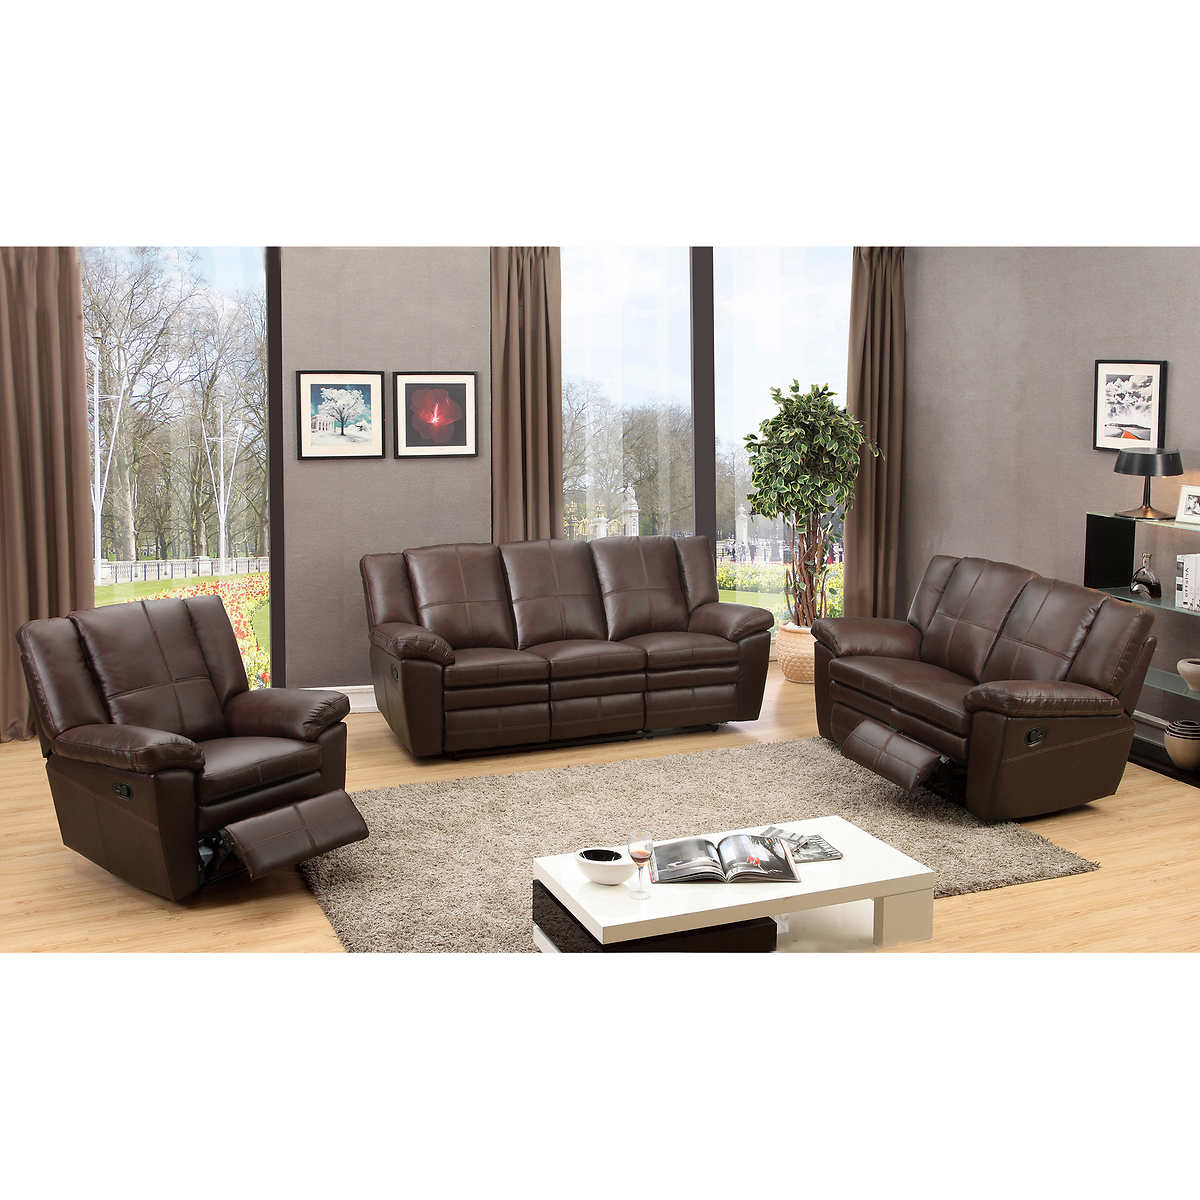 Leather Reclining Living Room Sets Lucca 3 Piece Top Grain Leather Manual Reclining Living Room Set